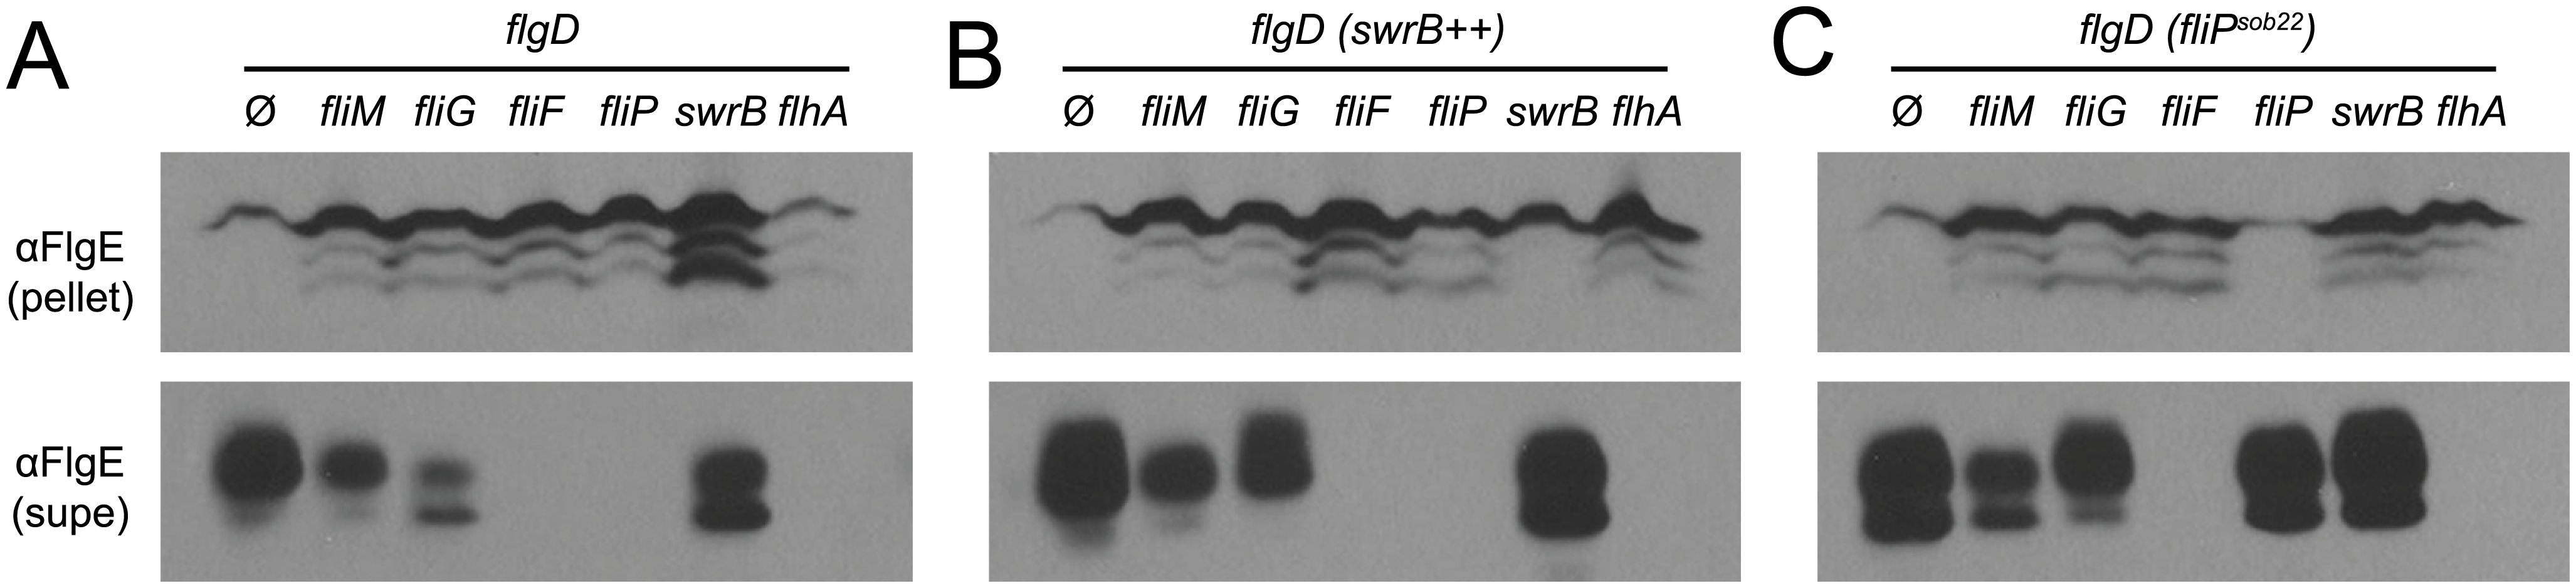 SwrB overexpression bypasses the hook protein secretion hook in cells mutated for FliM and FliG but not cells mutated for FliF.